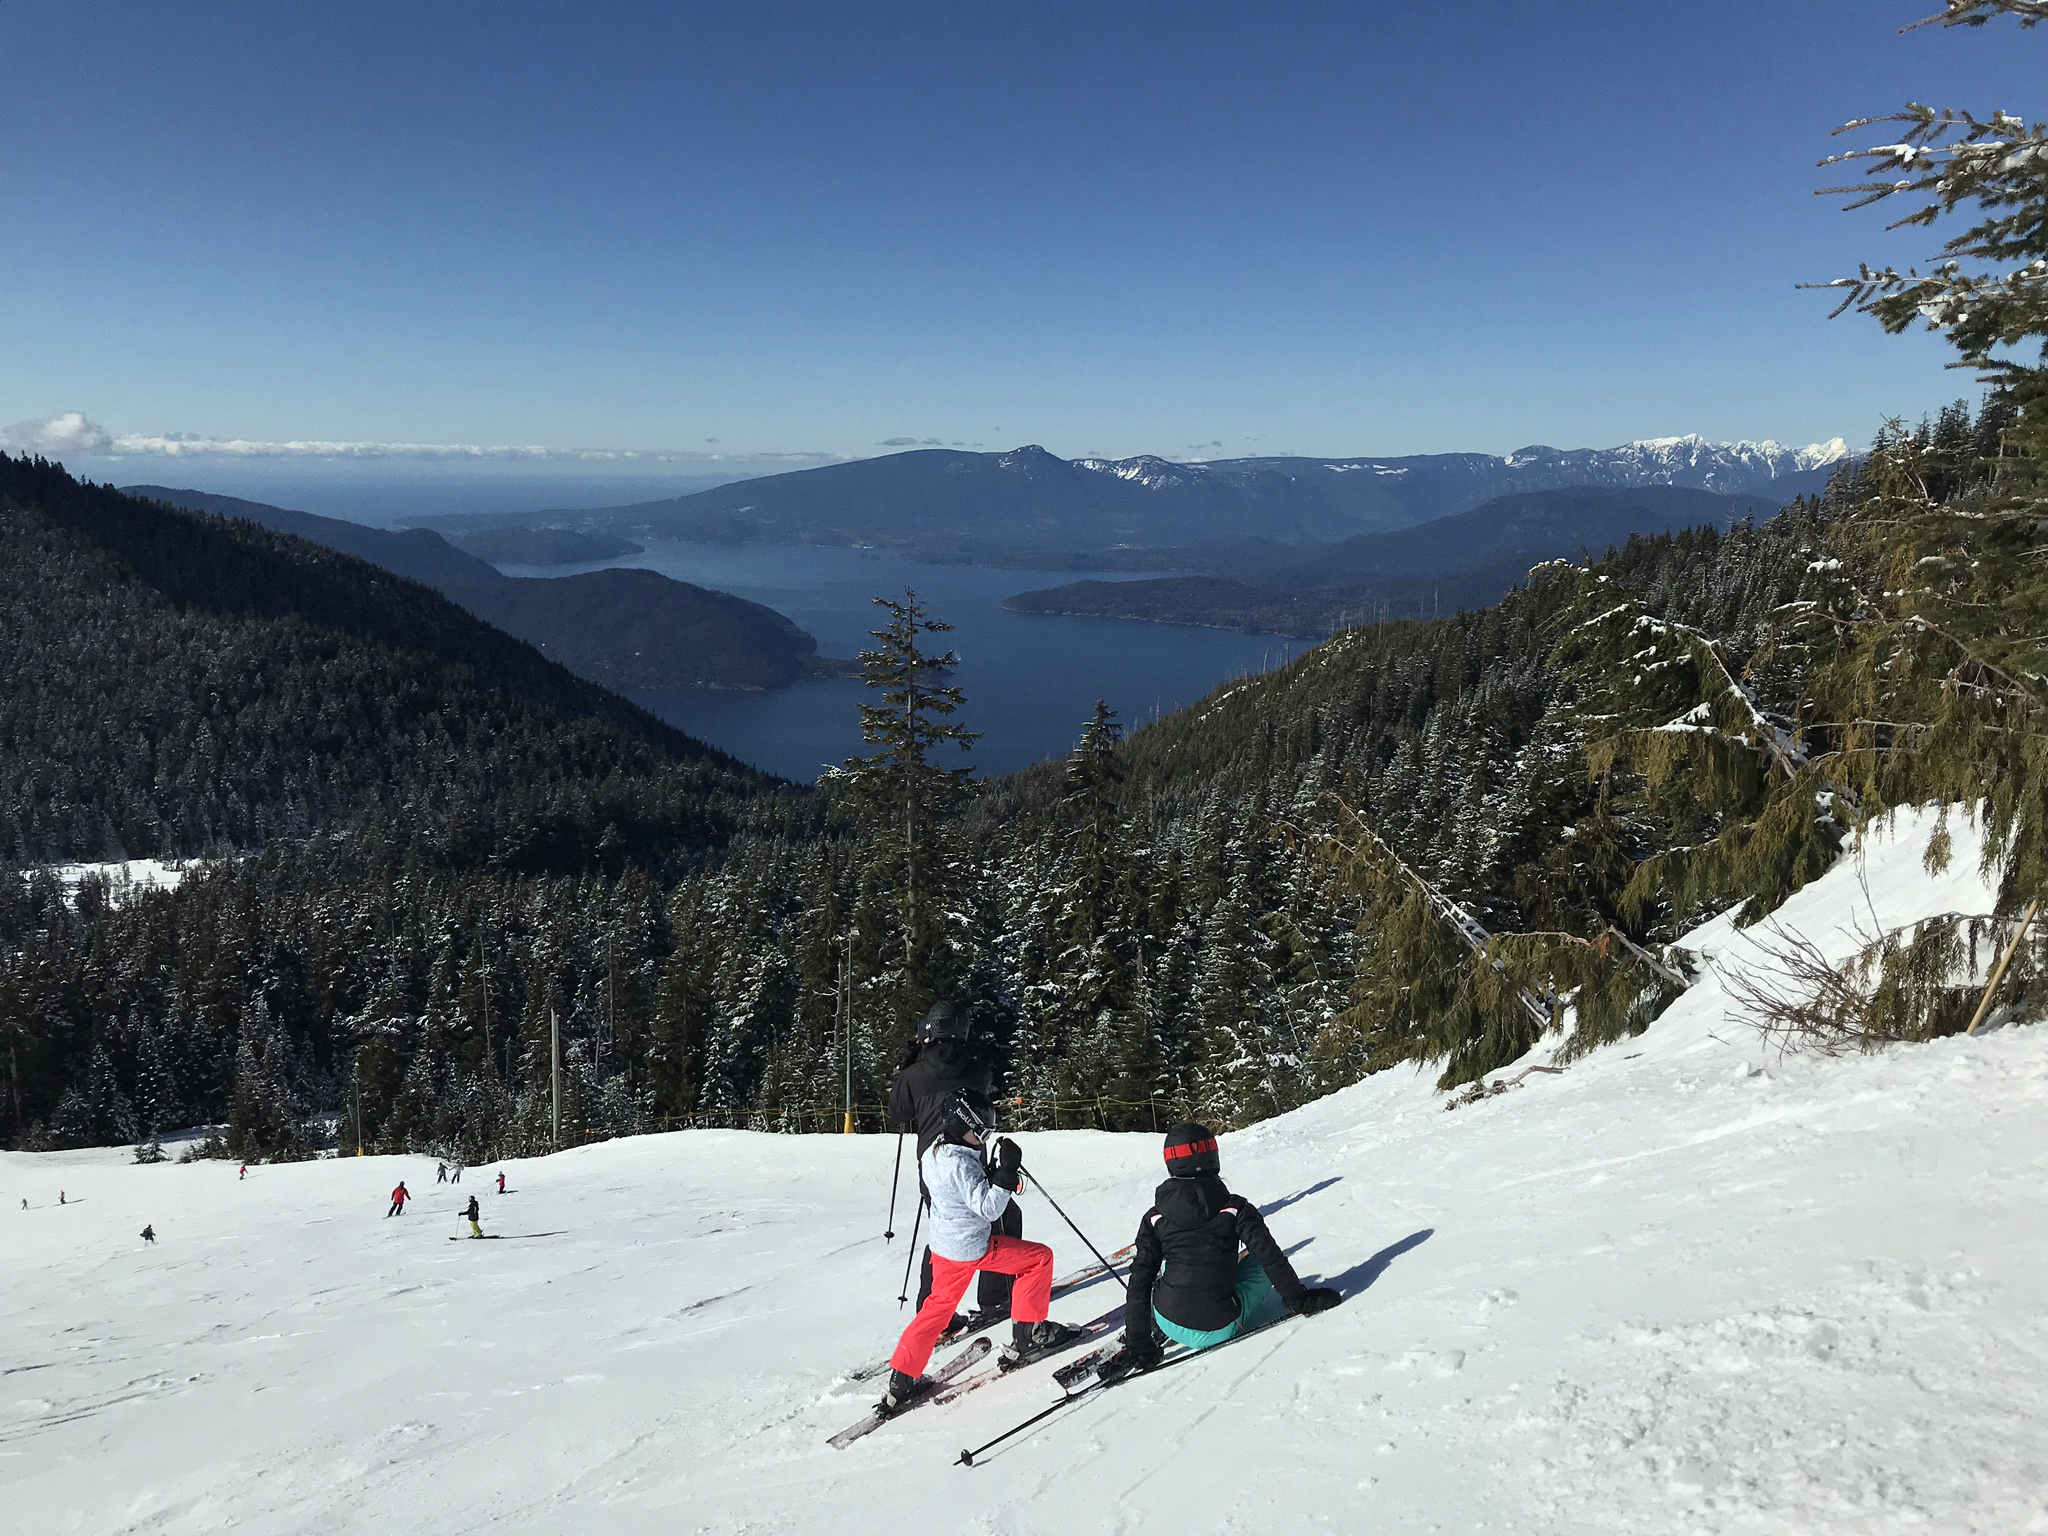 Sunny day on Cypress Mountain, 2018